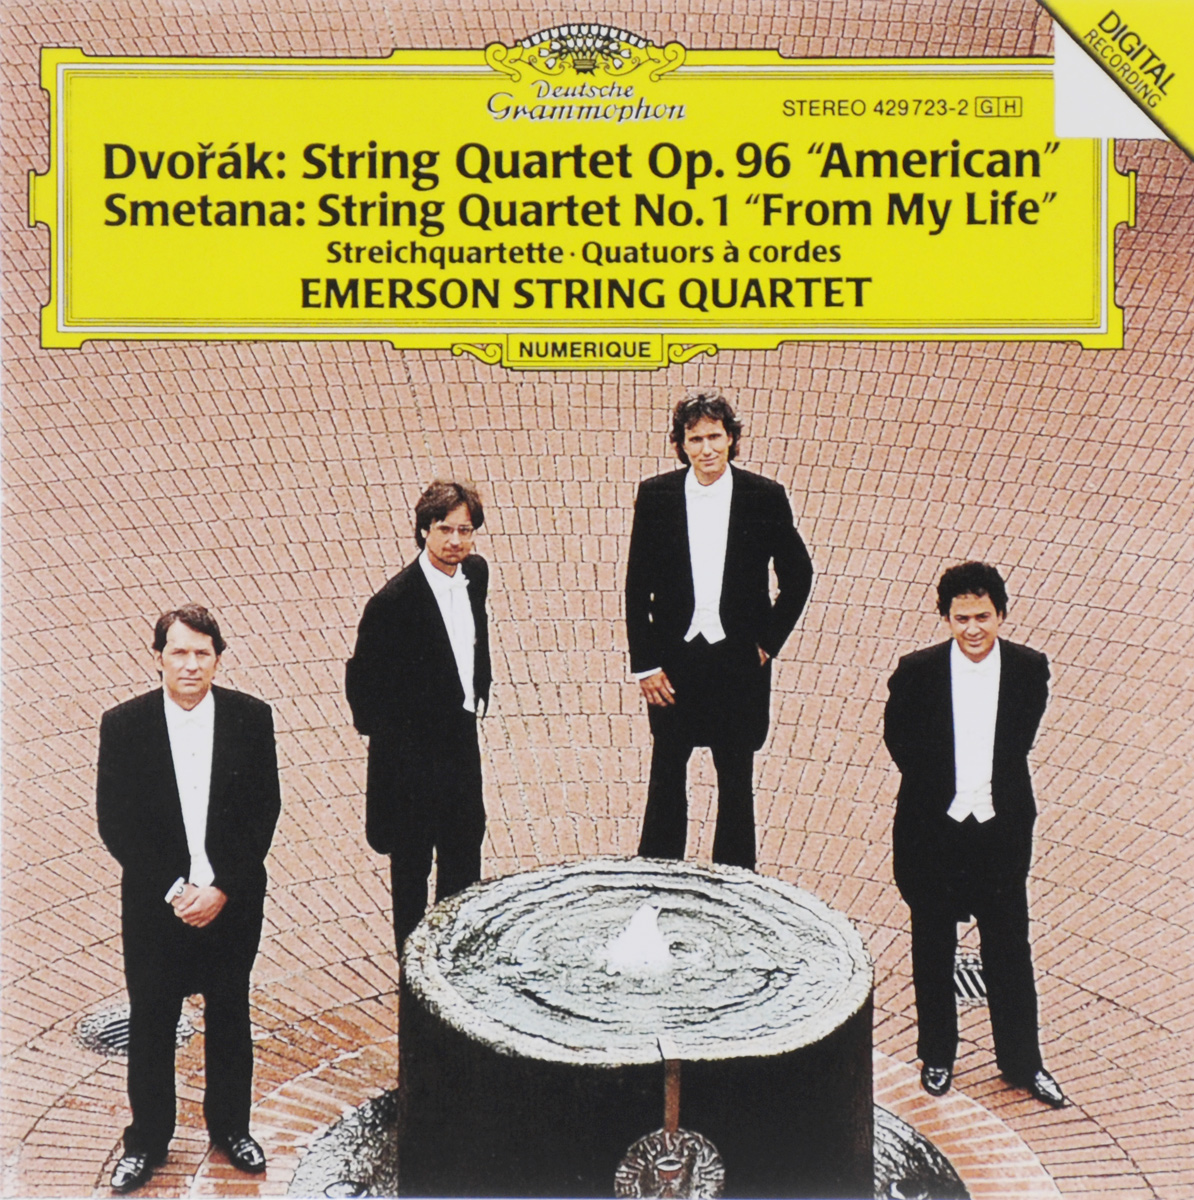 Emerson String Quartet Emerson String Quartet. String Quartet Op. 96 American / String Quartet No. 1 From My Life orlando quartet orlando quartet haydn string quartets op 76 nos 4